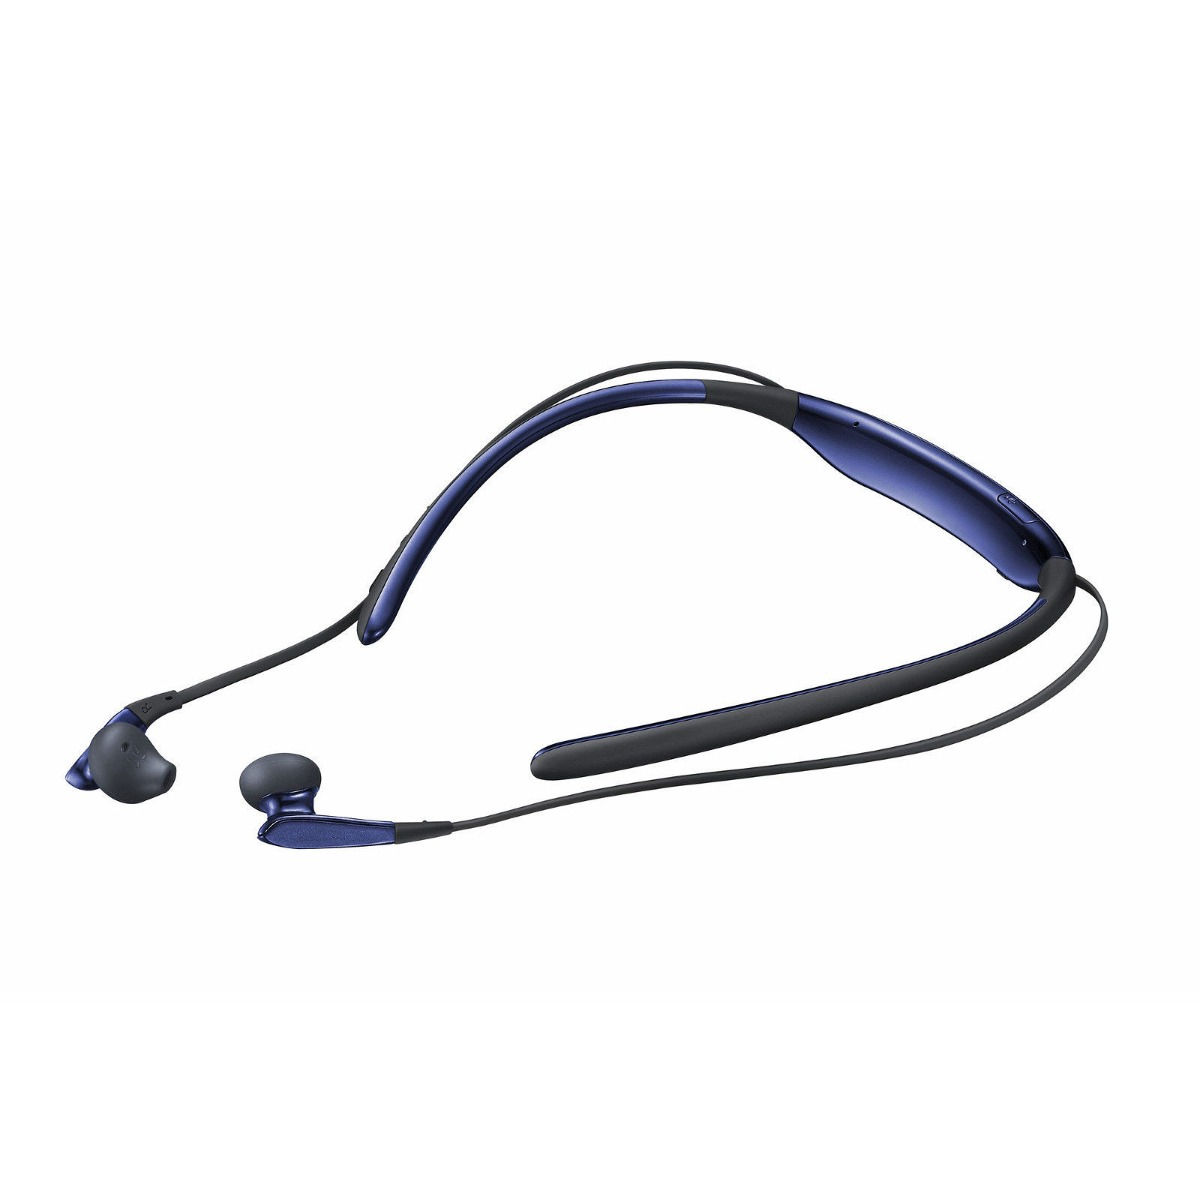 Manos Libres Samsung Bluetooth Samsung Level U Auriculares Bluetooth Manos Libres 175